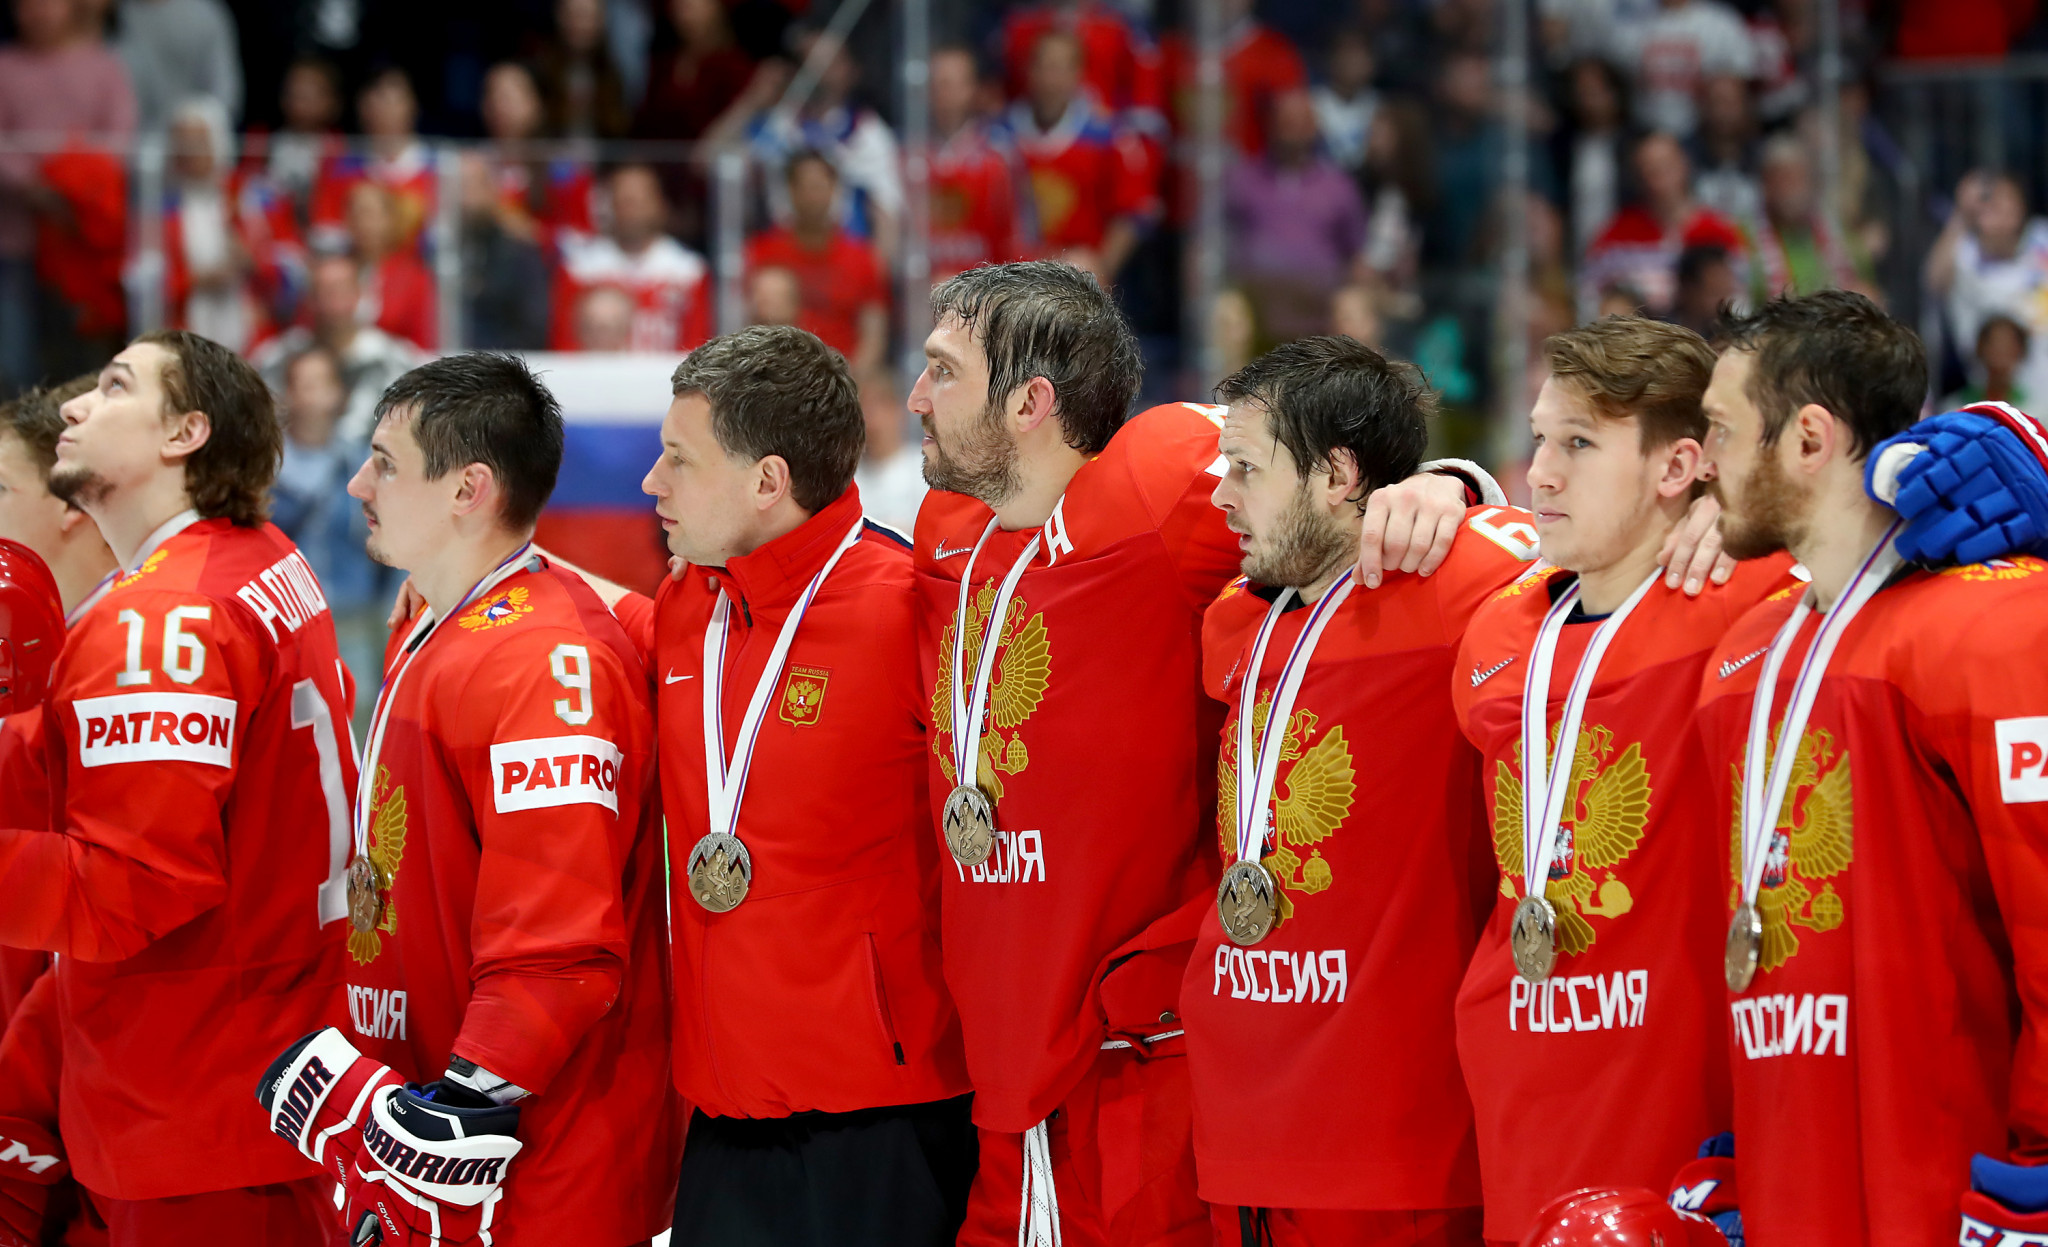 The name Russia and Russian symbols are prohibited on kit for the World Championships and Winter Olympics ©Getty Images